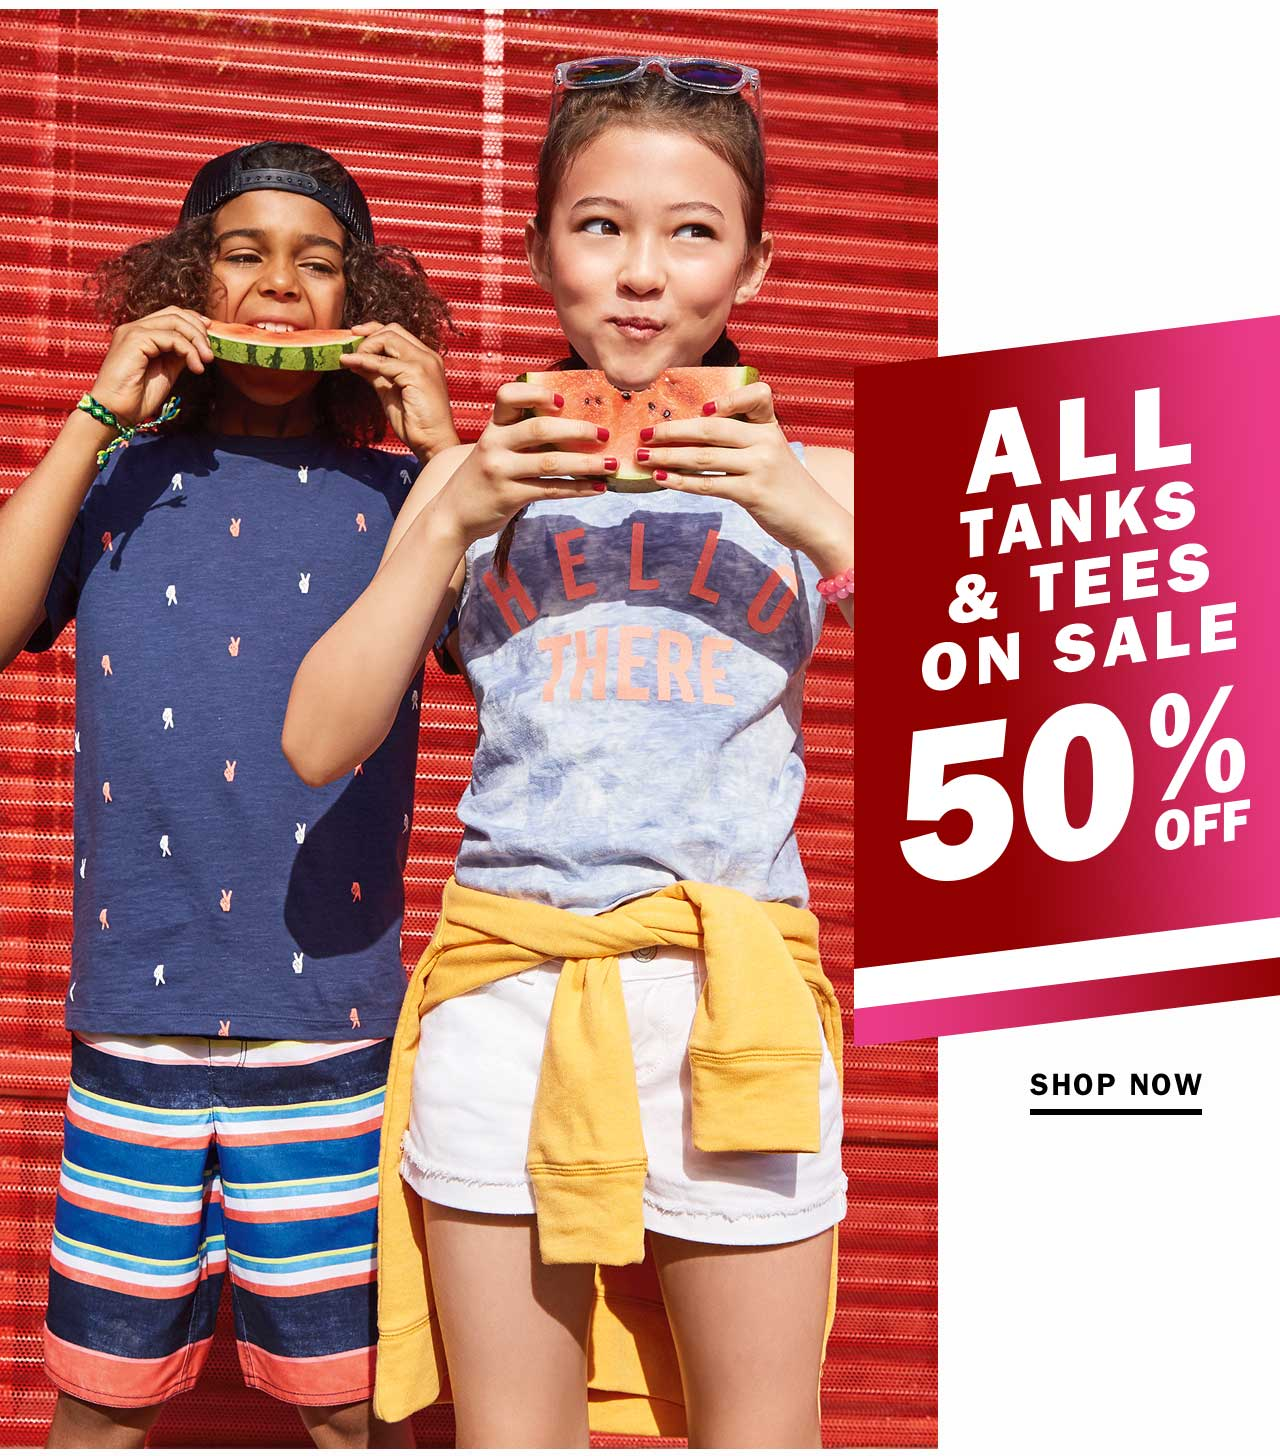 ALL TANKS & TEES ON SALE 50% OFF | SHOP NOW